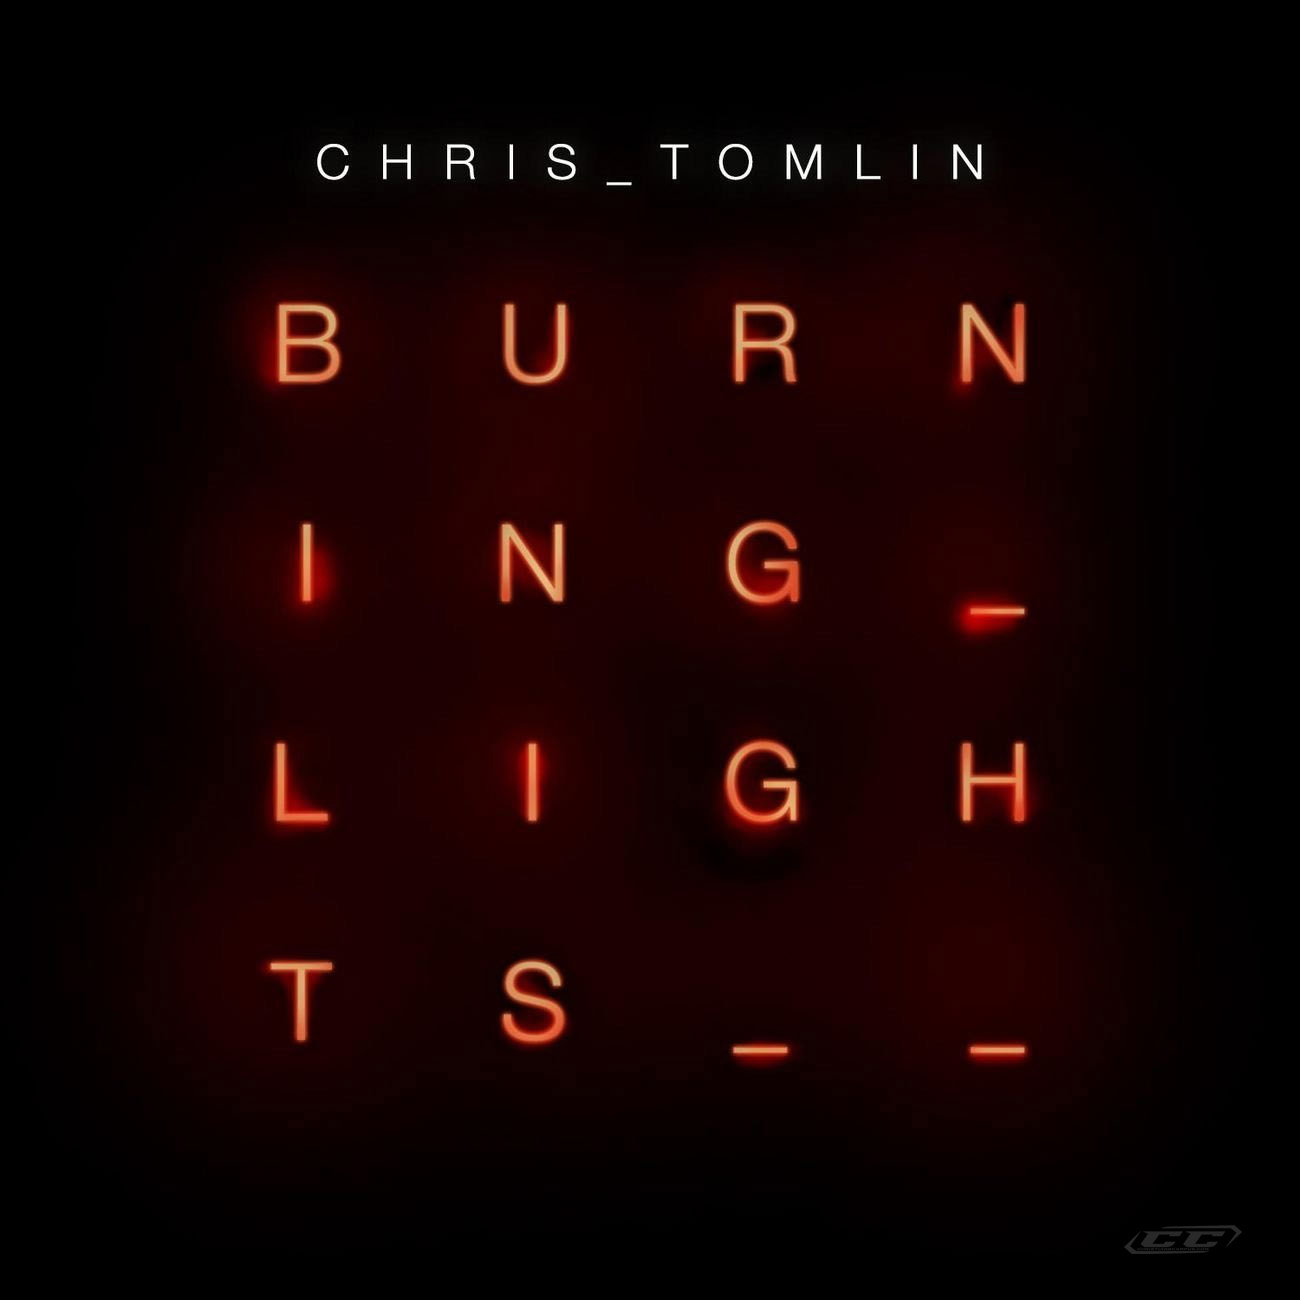 Chris Tomlin - Burning Lights 2013 English christian album download